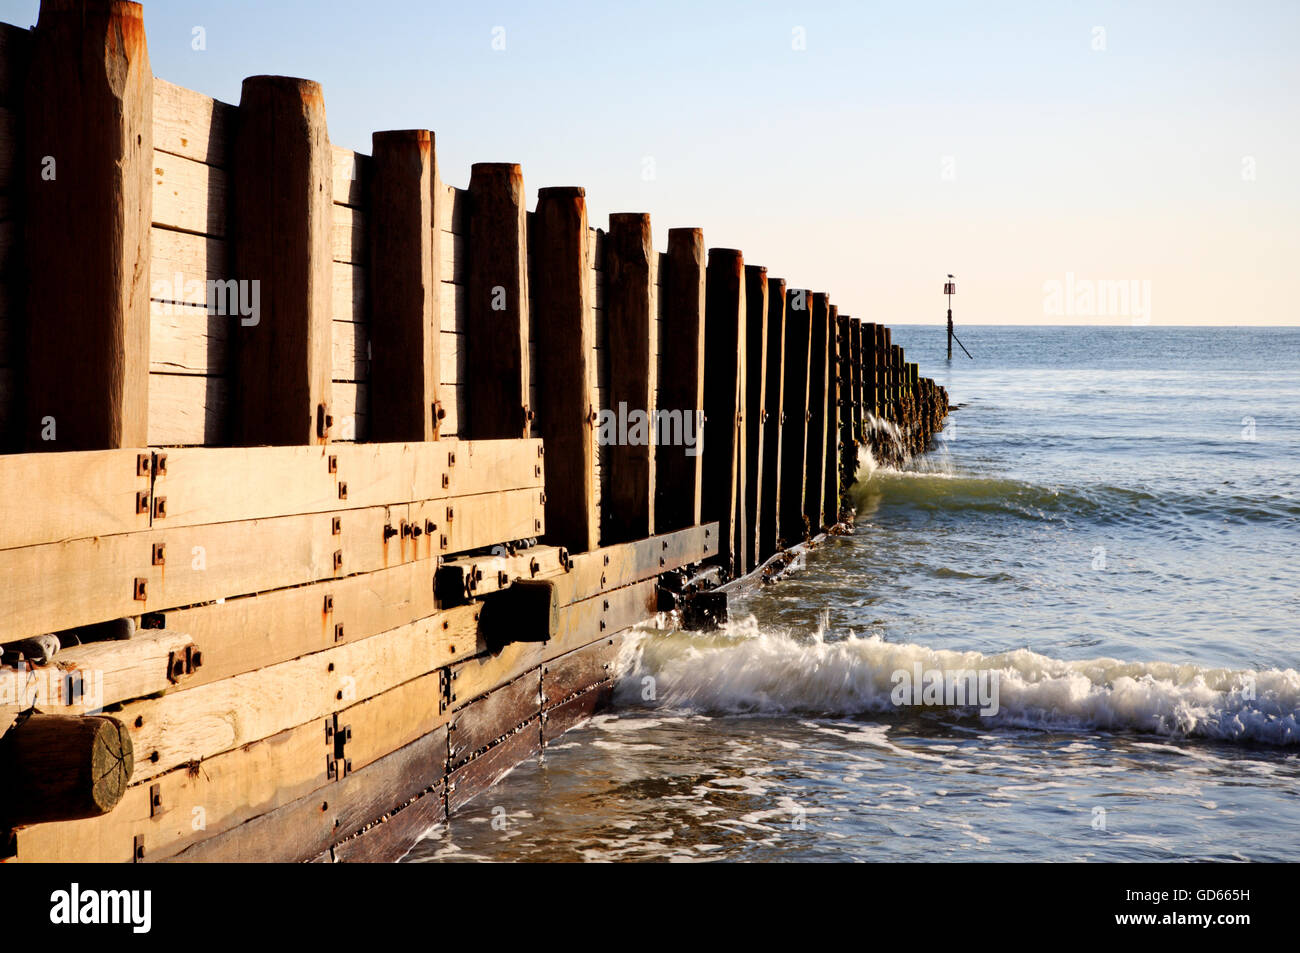 A substantial wooden breakwater on the beach at Cromer, Norfolk, England, United Kingdom. - Stock Image